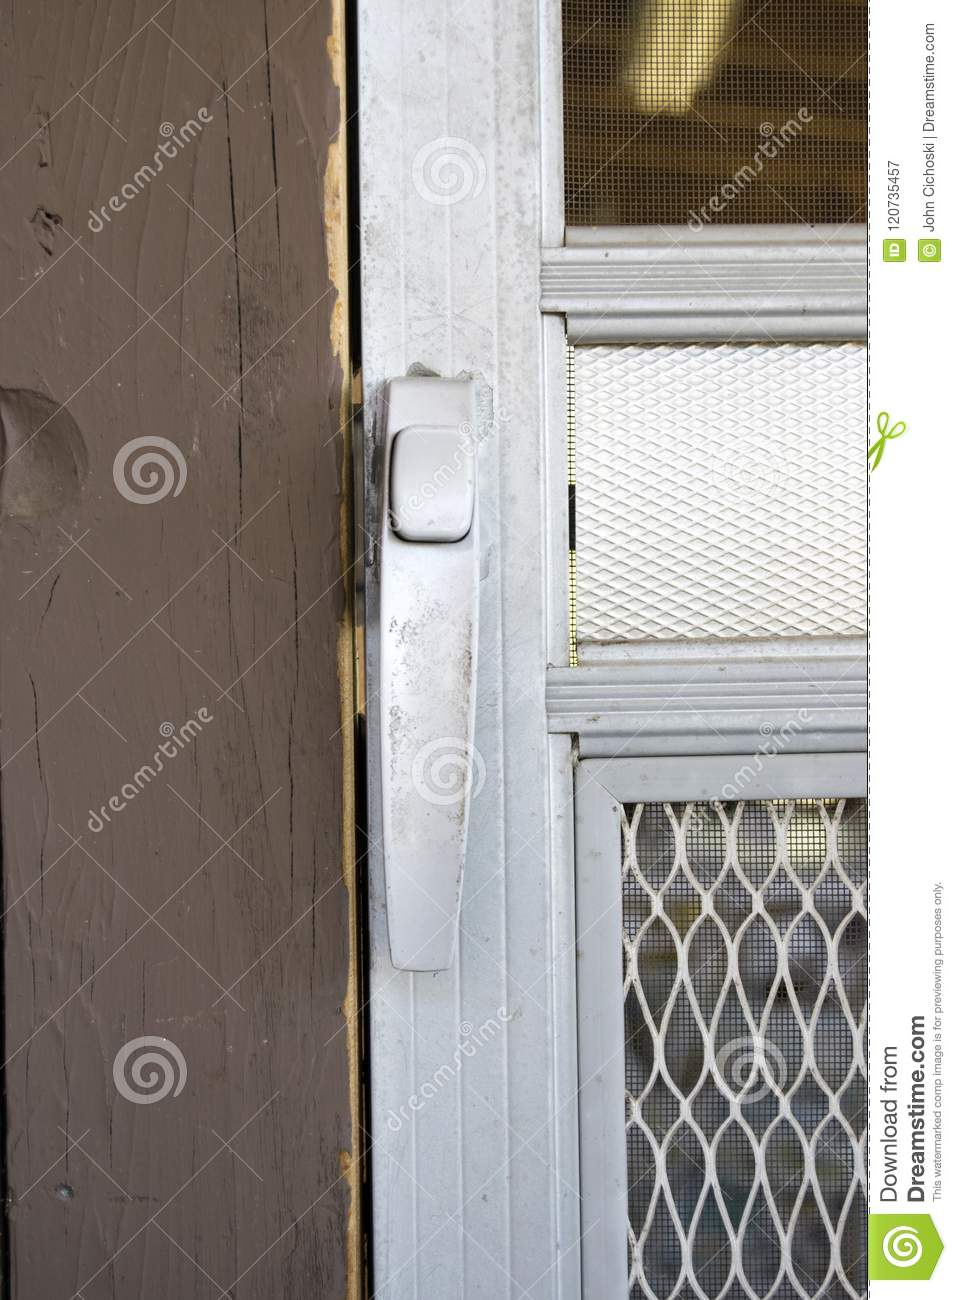 Aluminum Screen Door And Handle Stock Image Image Of Home Screen